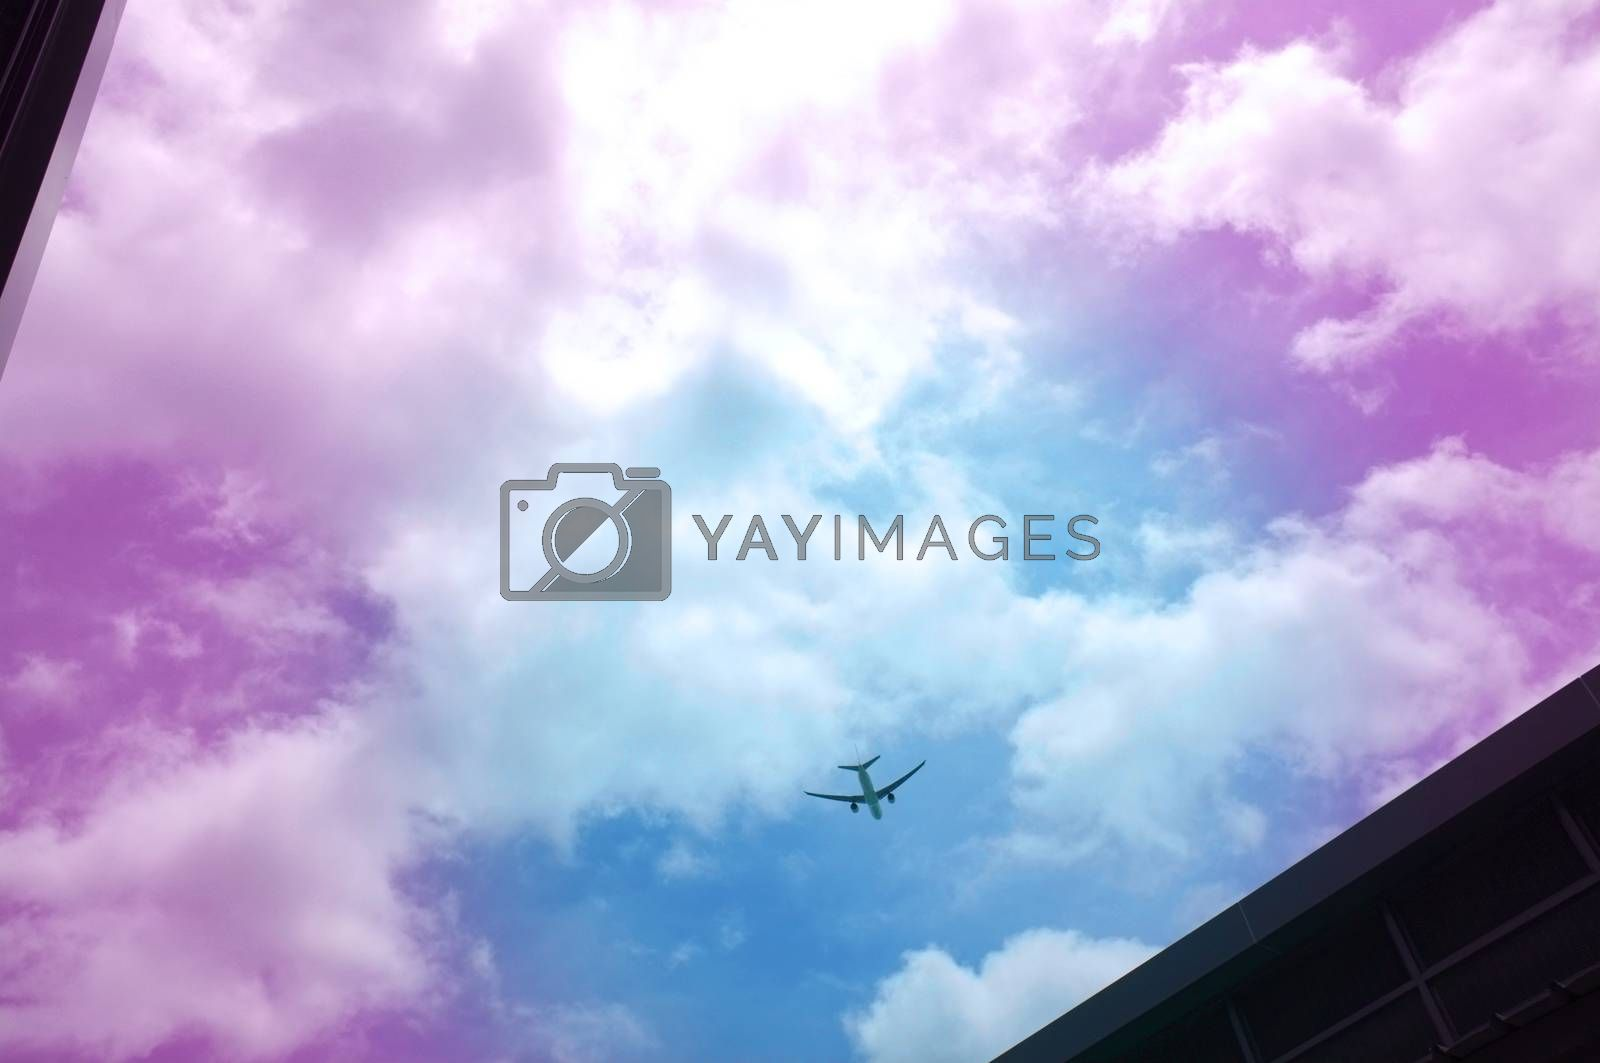 Royalty free image of Silhouette Airplane in the beautiful sky by Hepjam